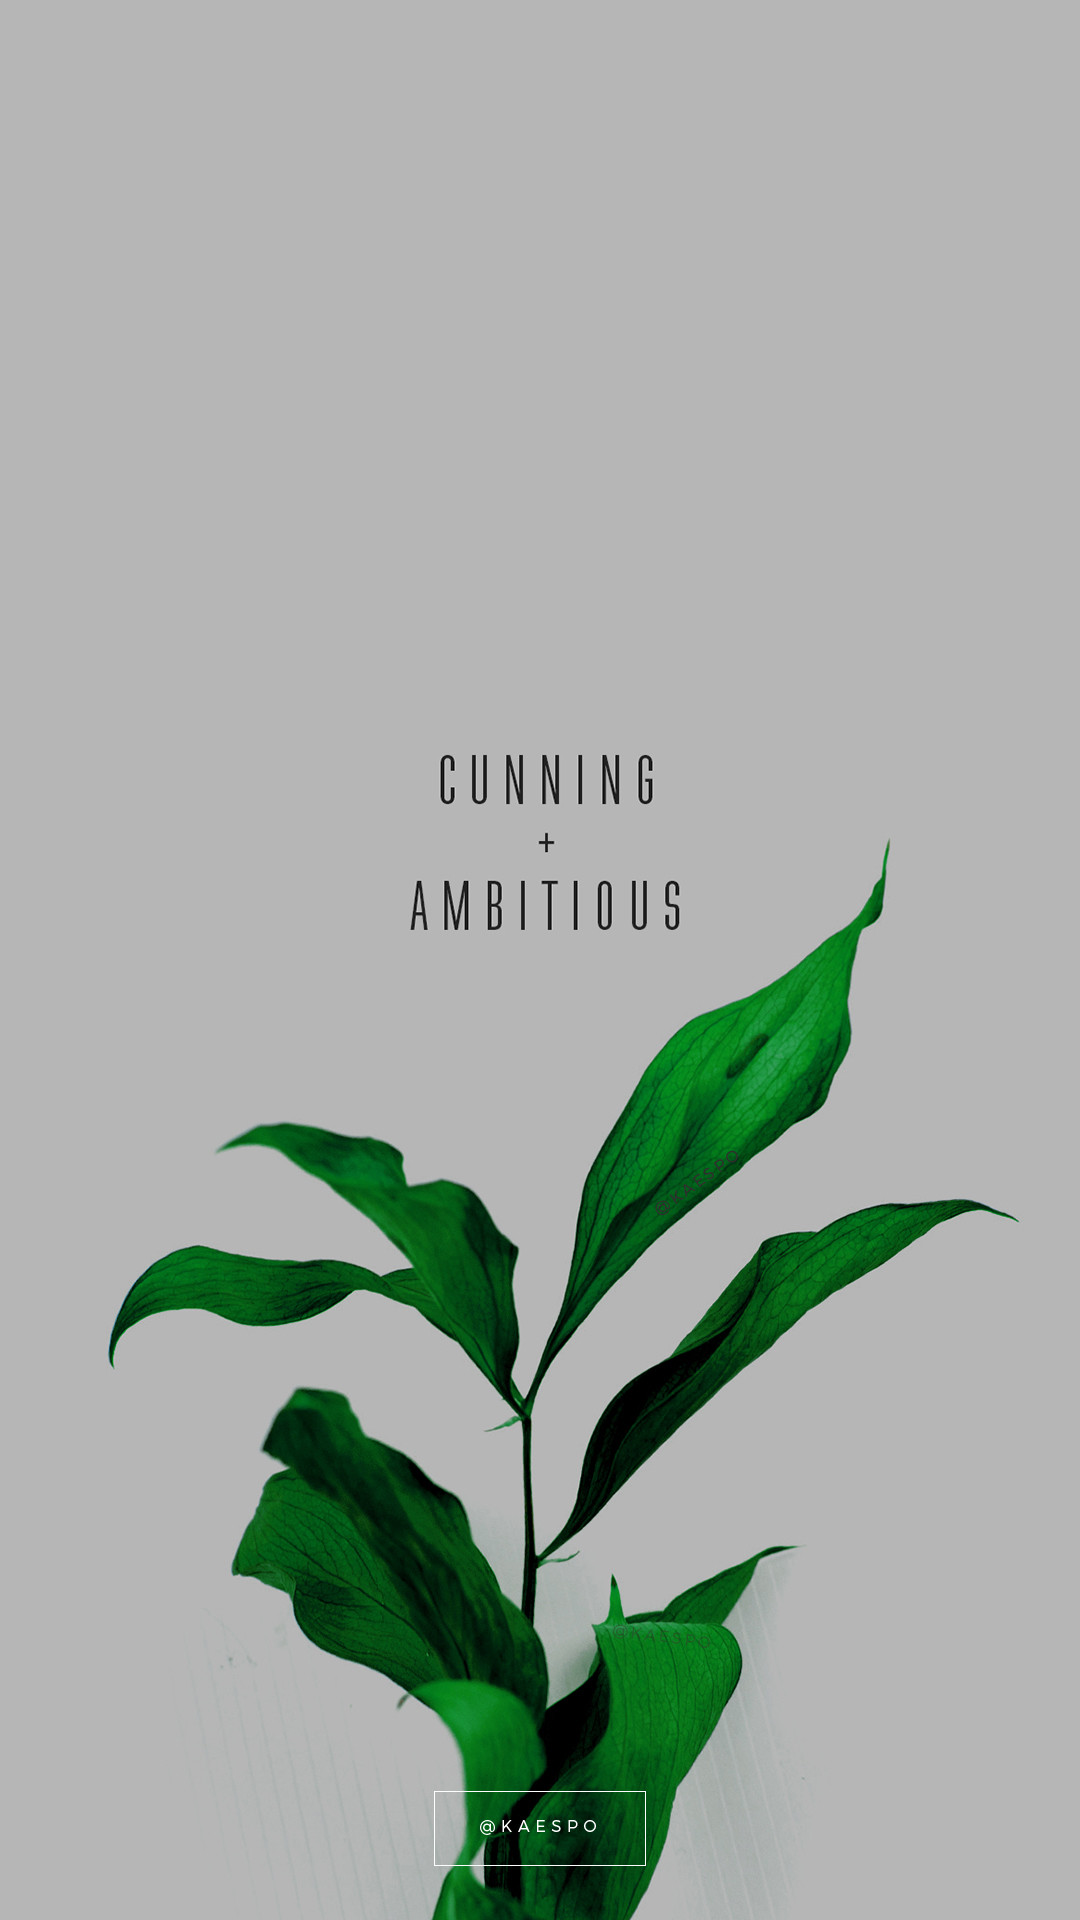 Cunning And Ambitious Slytherin Quote on Green Floral Background by kaespo